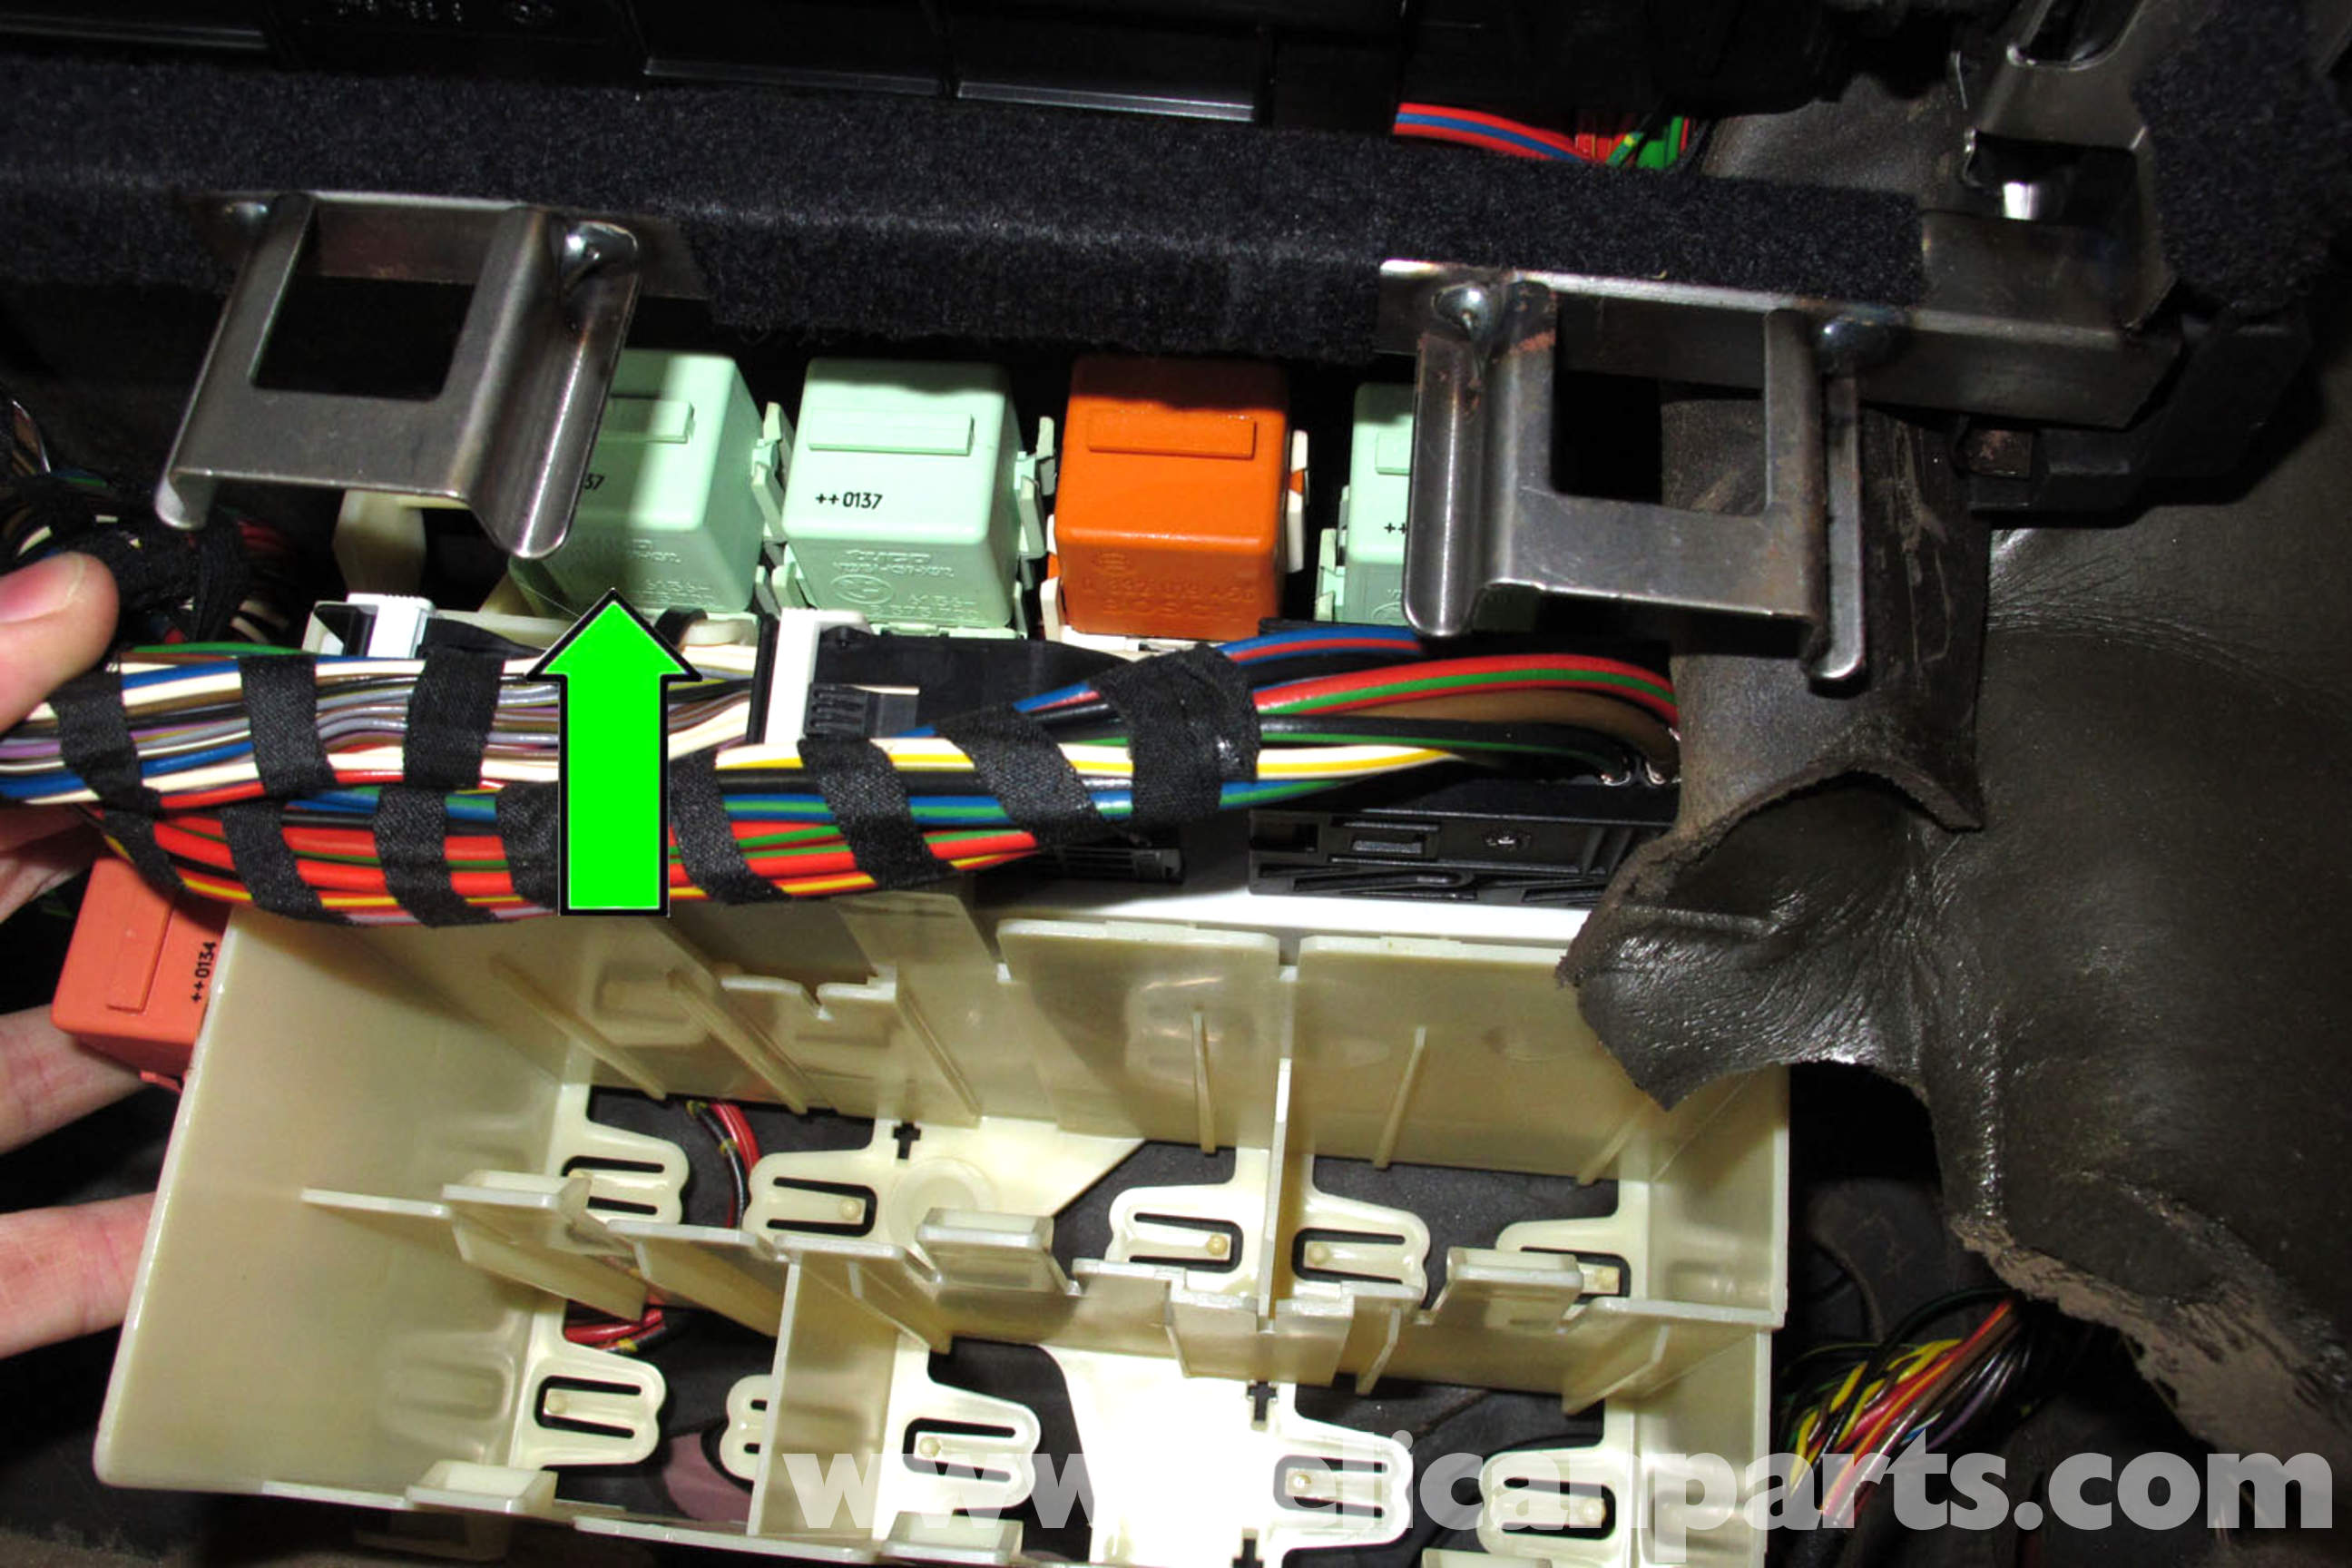 Bmw 318i E90 Faulty Reverse Lights T129623 likewise Bmw 3 Series E36 Cigarette Lighter Fuse Location And moreover 18 FUEL Fuel Filter Replacement besides Showpost moreover 1998 Lincoln Towncar Fuse Box Diagram. on 2007 bmw 530i fuse box diagram